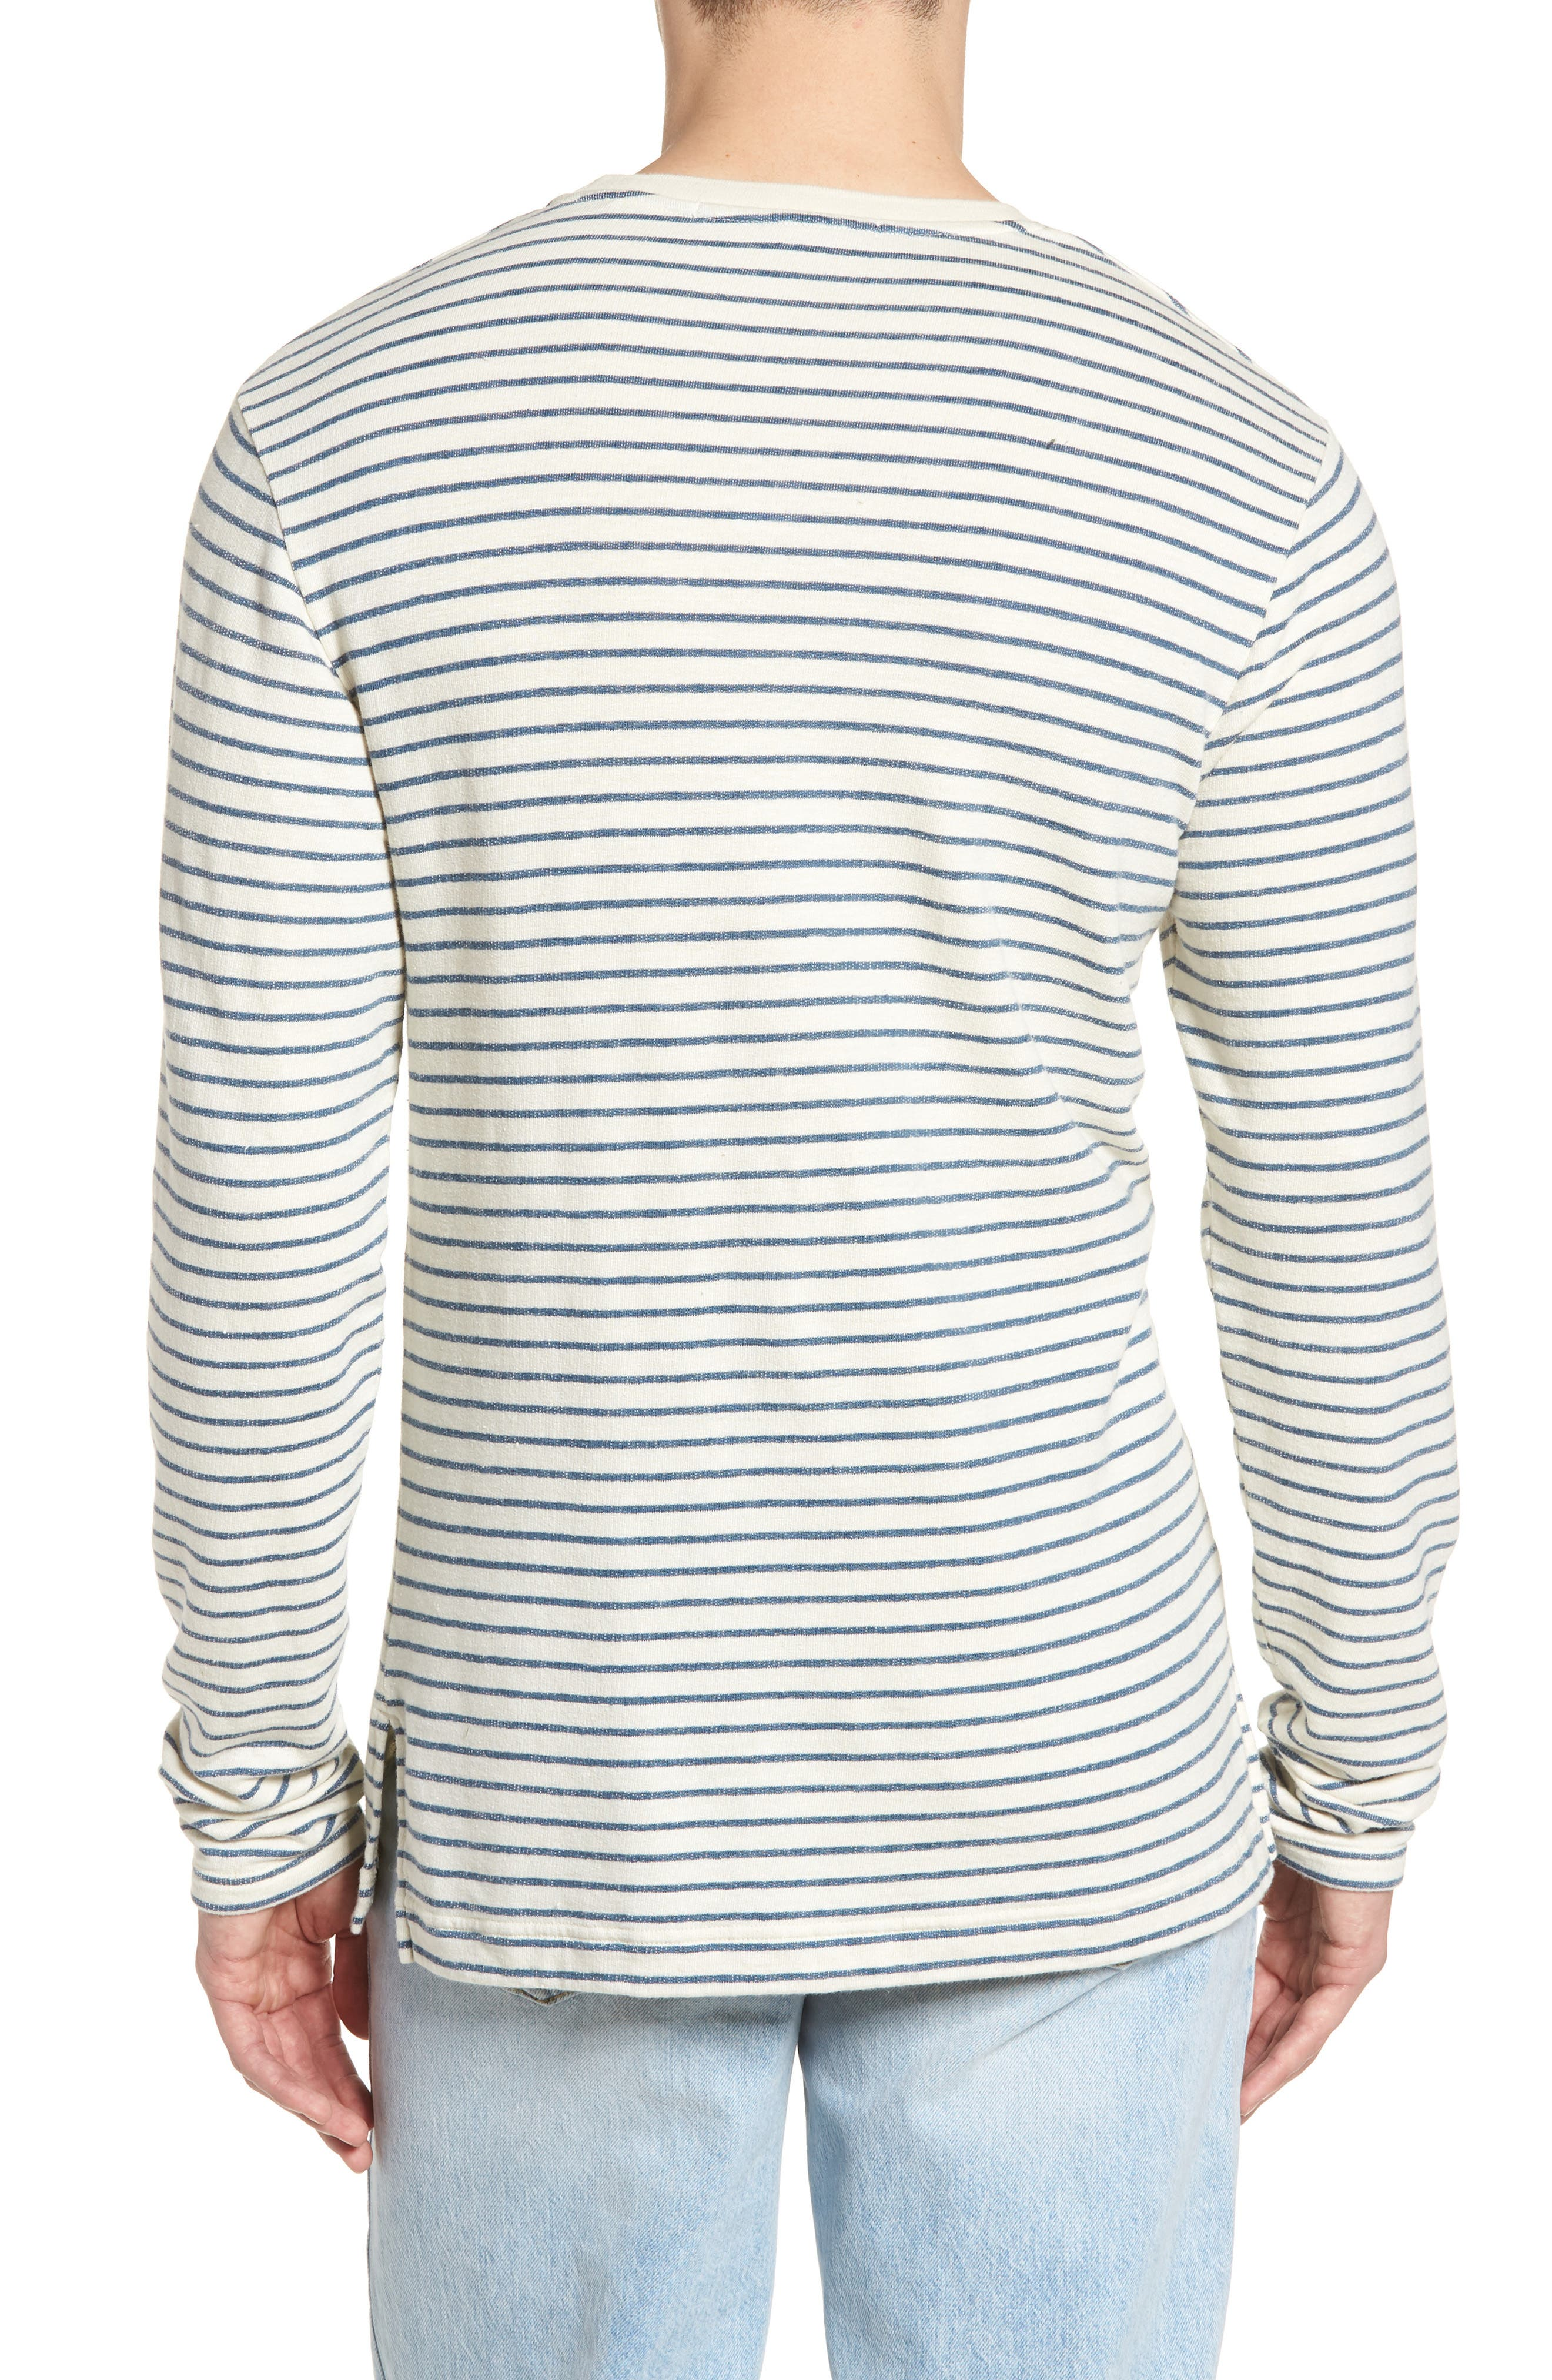 Stripe Crewneck Sweater,                             Alternate thumbnail 2, color,                             250